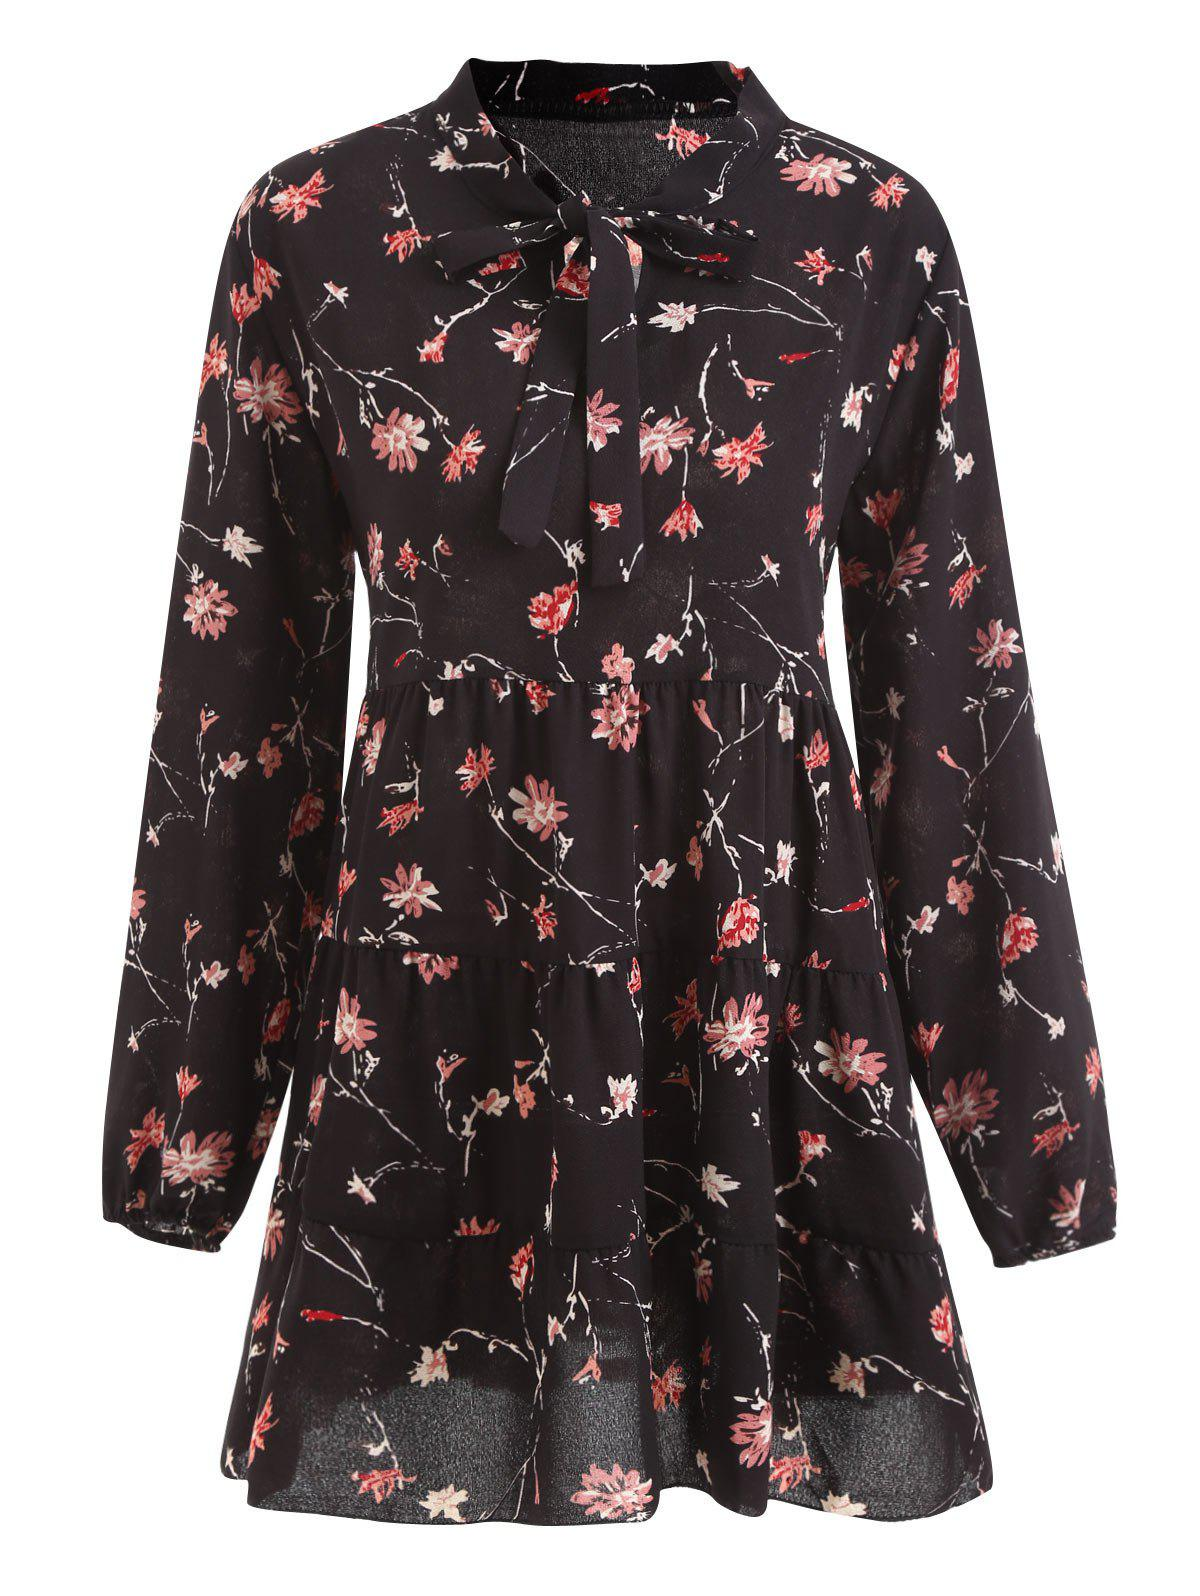 Plus Size Bowtie Floral Chiffon  Tunic TopWOMEN<br><br>Size: 3XL; Color: BLACK; Material: Cotton Blends,Polyester; Fabric Type: Chiffon; Shirt Length: Long; Sleeve Length: Full; Collar: Bow Tie Collar; Style: Casual; Season: Fall; Embellishment: Bowknot; Pattern Type: Floral; Weight: 0.2600kg; Package Contents: 1 x Top;